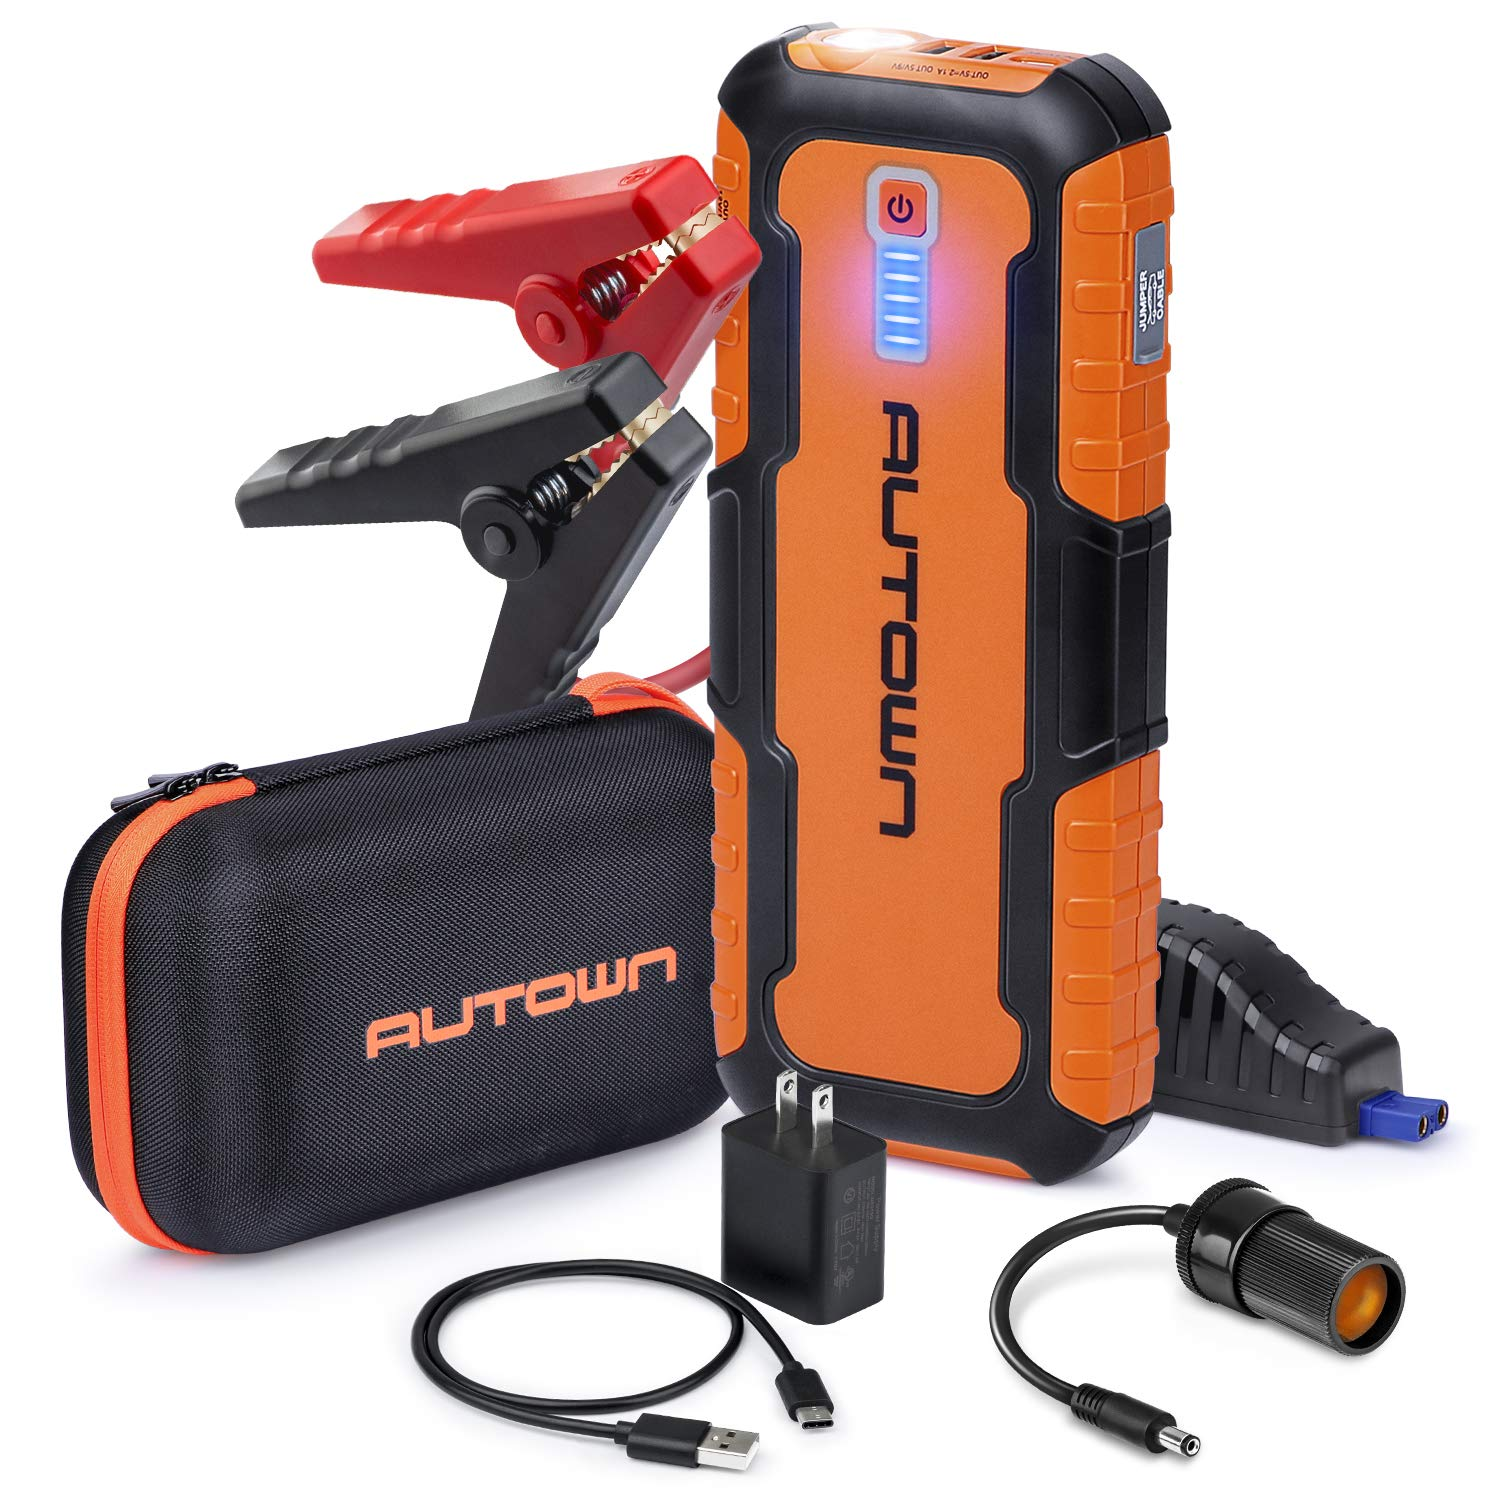 AUTOWN Car Jump Starter – 21000mAh 1000A Peak, 12V Auto Battery Booster With Quick Charge (Up To